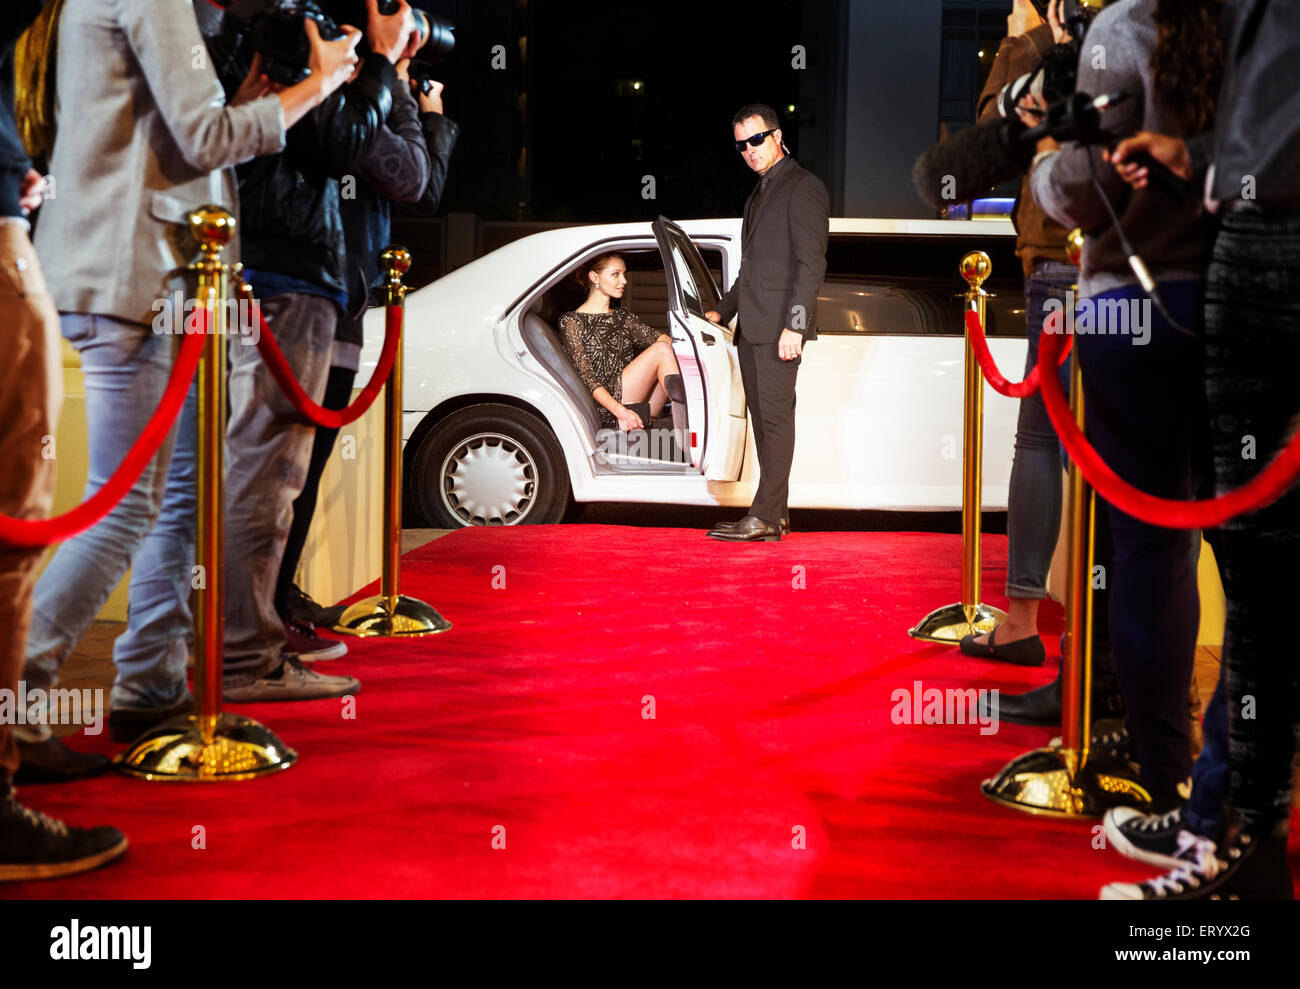 Security Roter Teppich Bodyguard Opening Limousine For Celebrity Arriving At Red